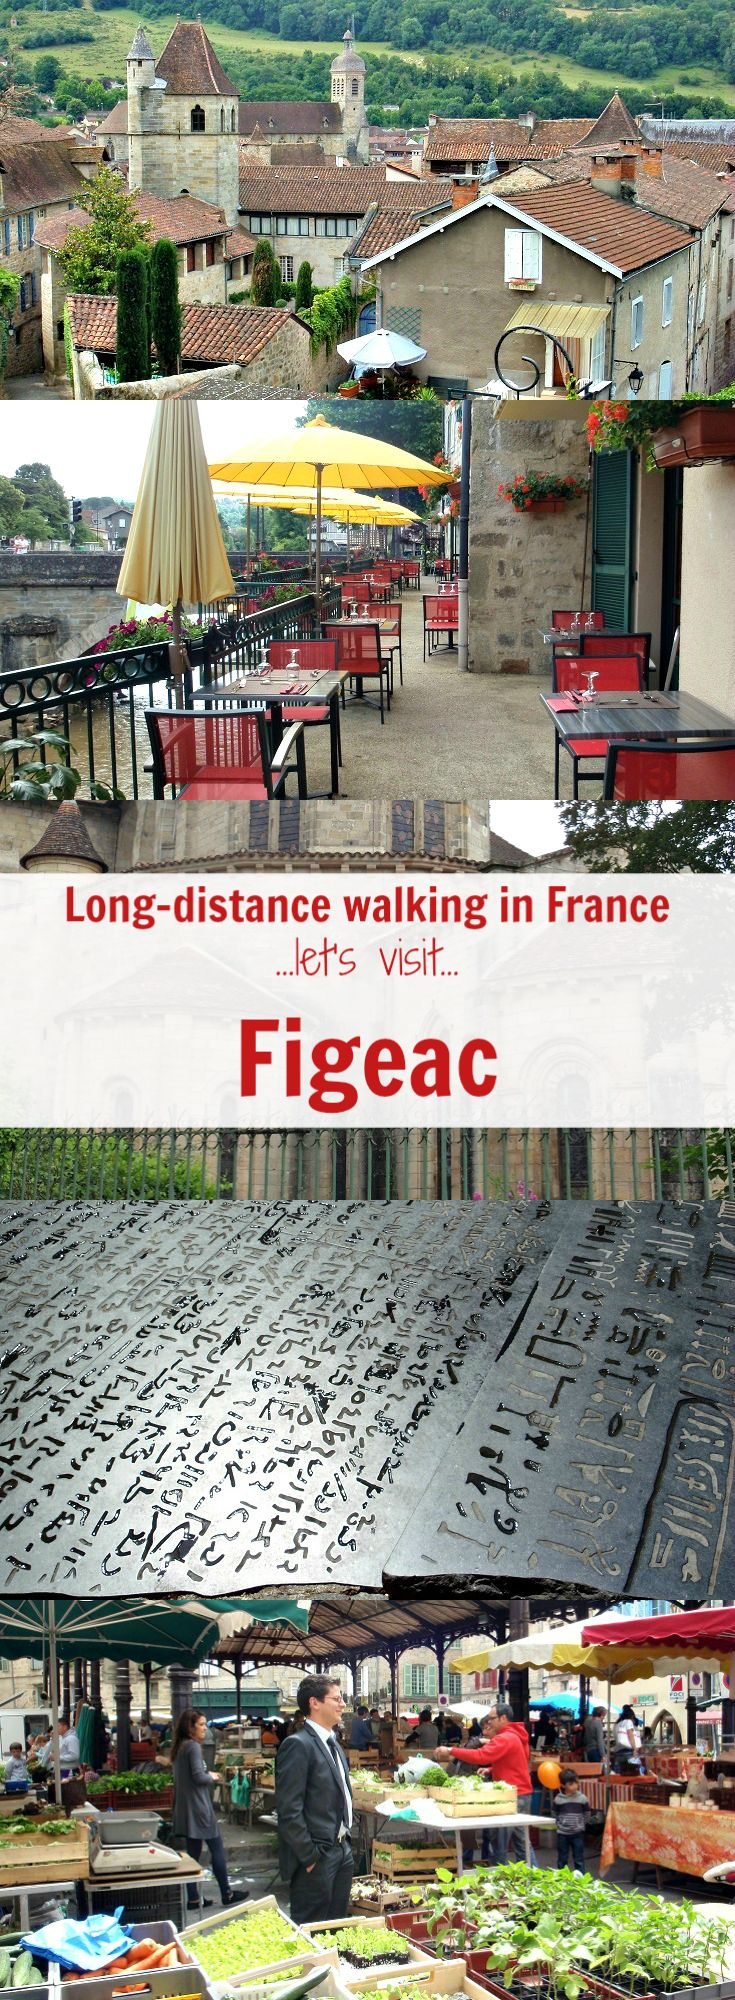 5 unforgettable moments in Figeac, France